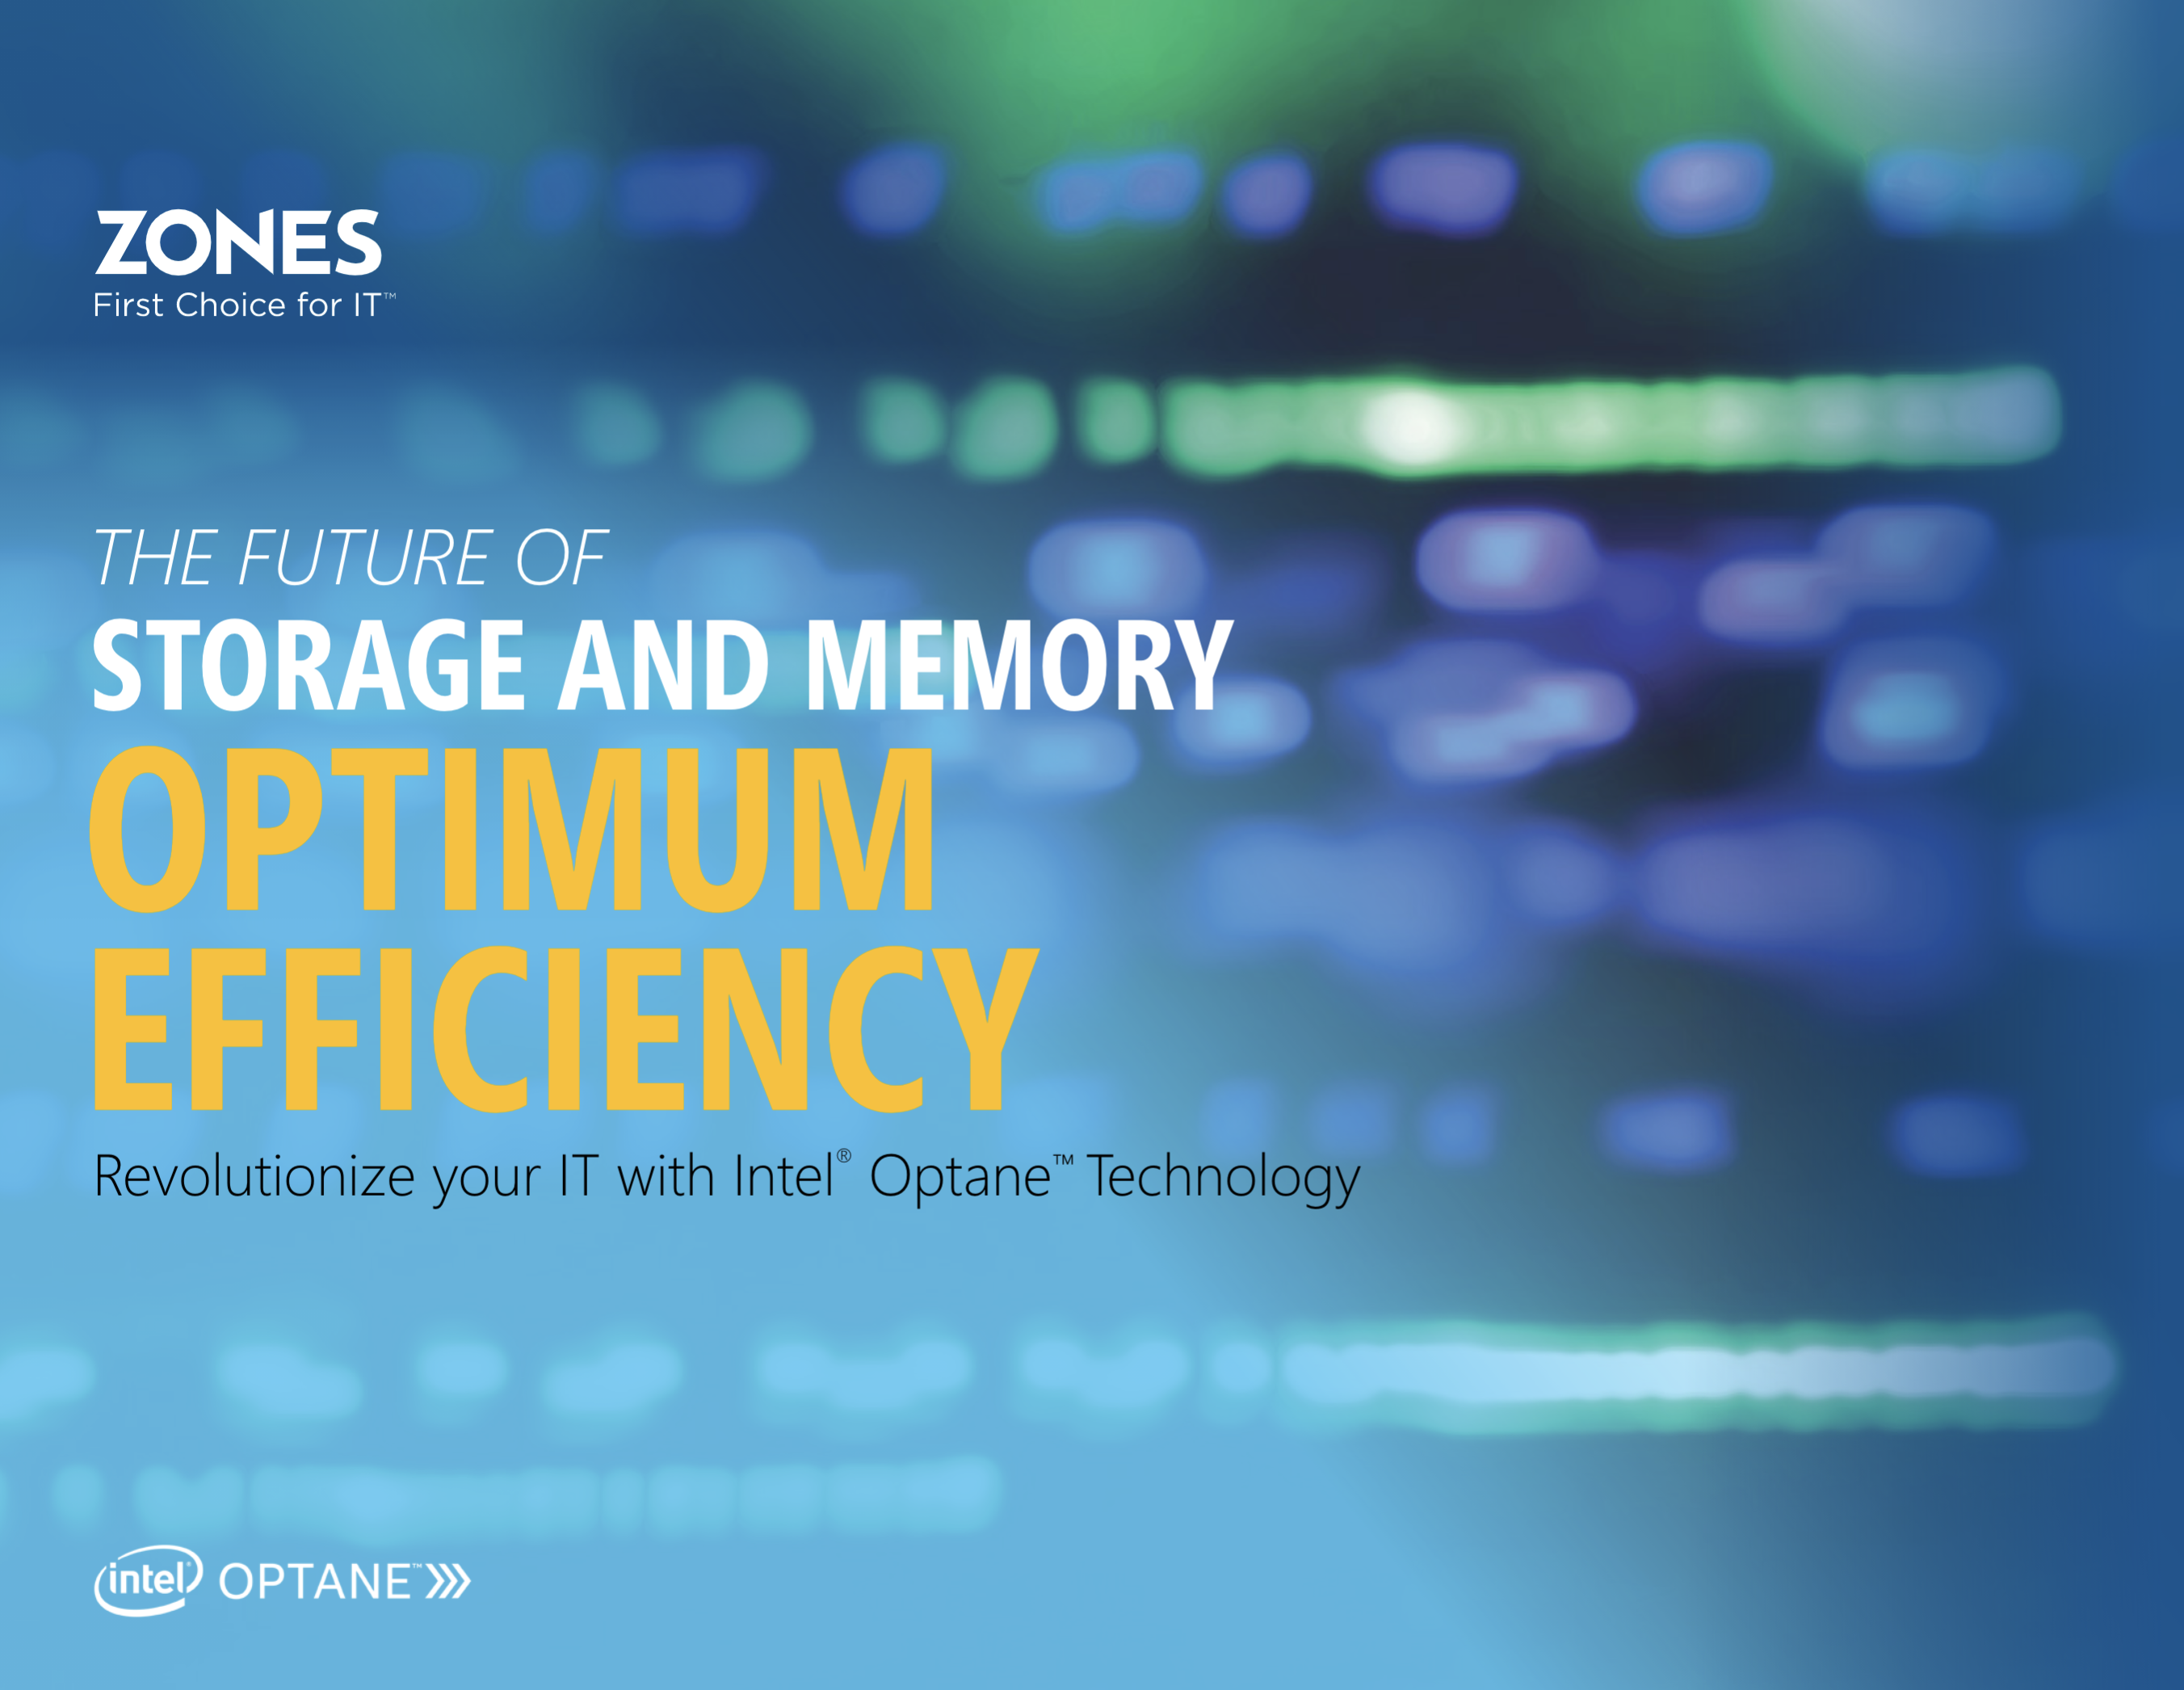 The Future of Storage and Memory